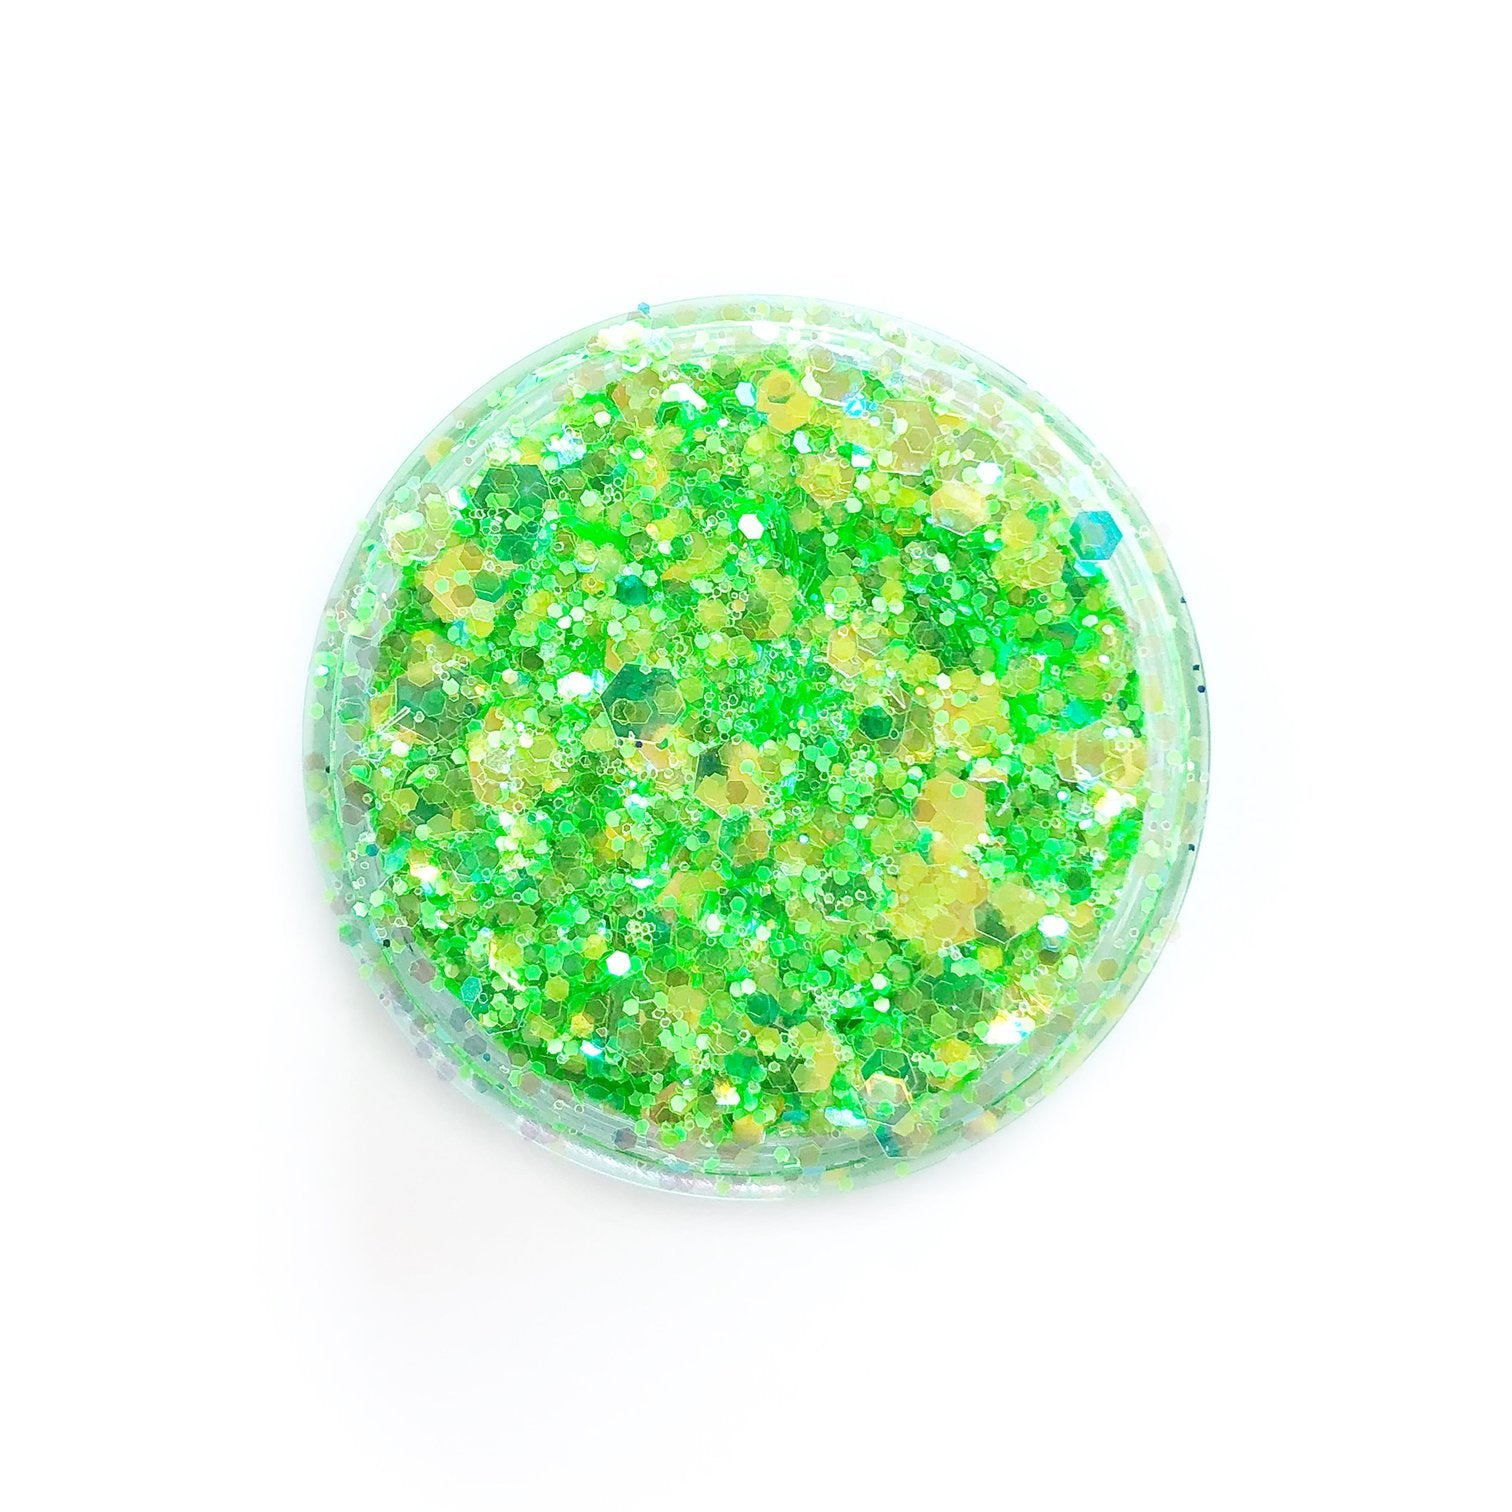 Lunautics Moon Dust Glitter - Slime UV Reactive